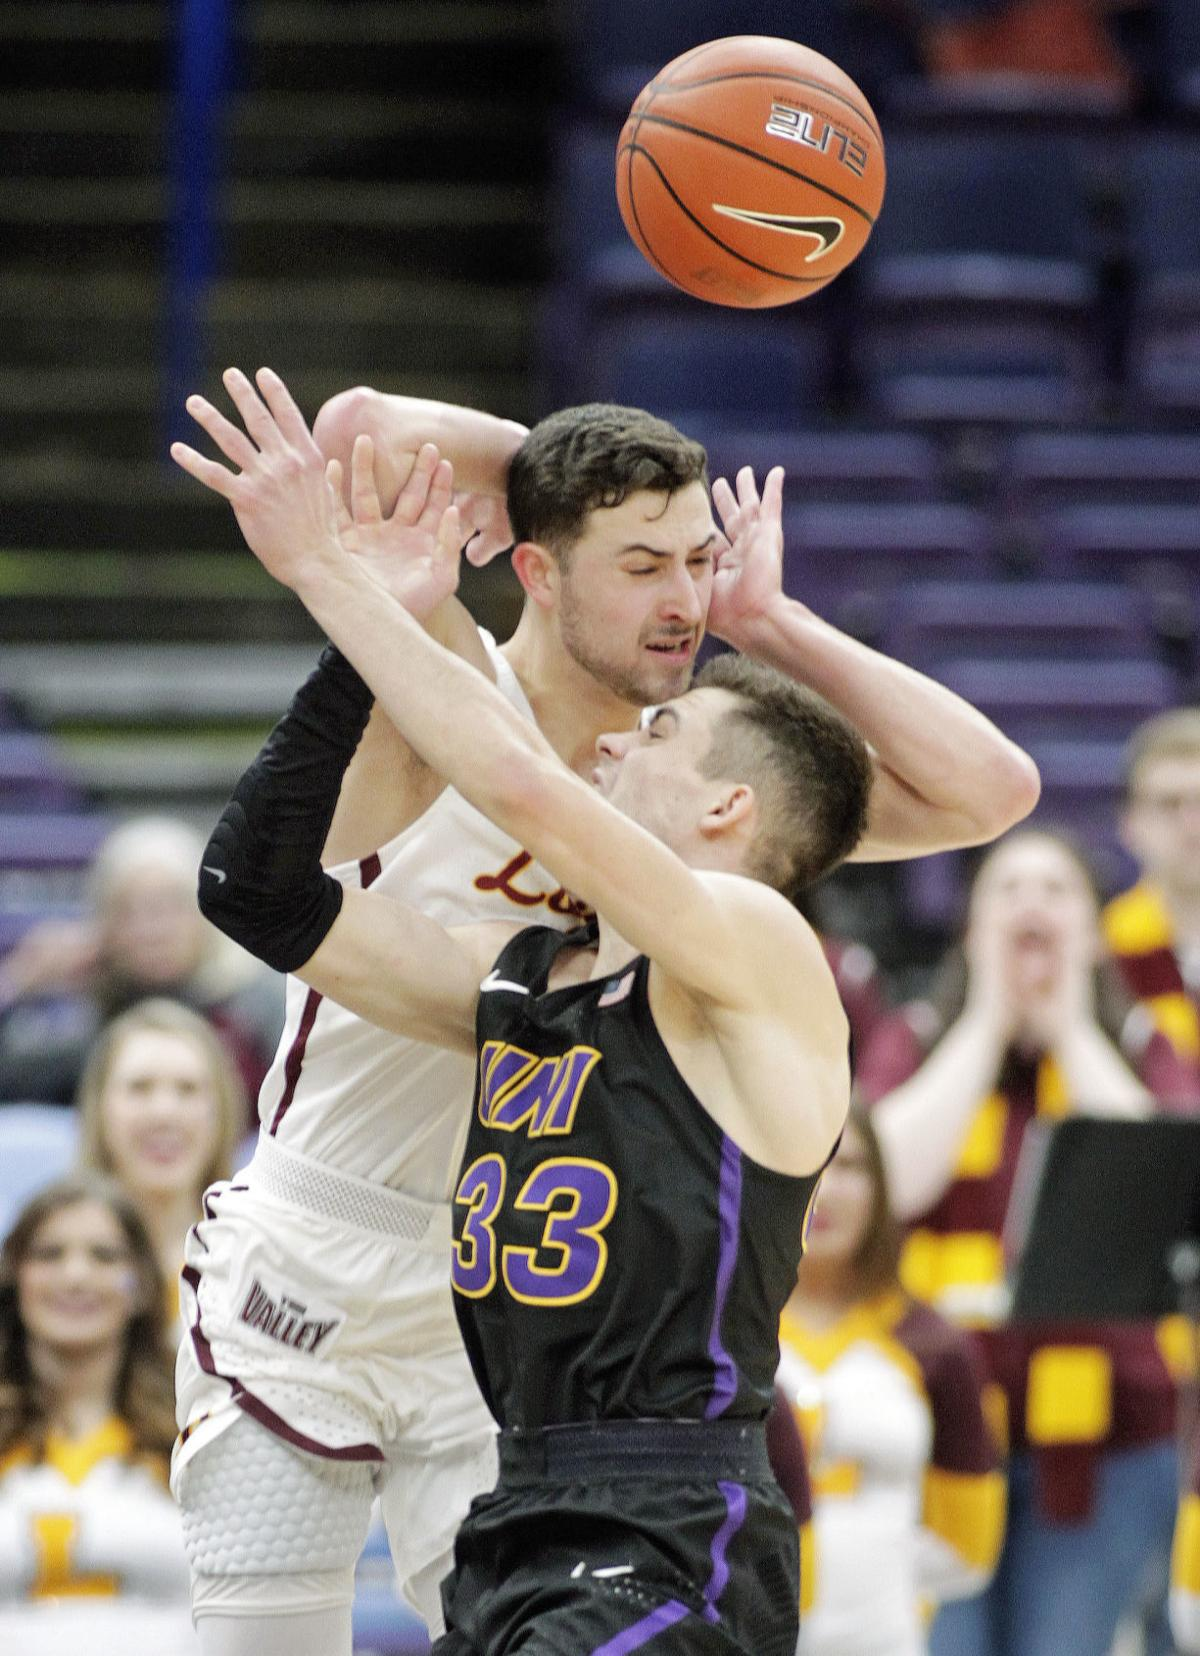 APTOPIX MVC Loyola Northern Iowa Basketball